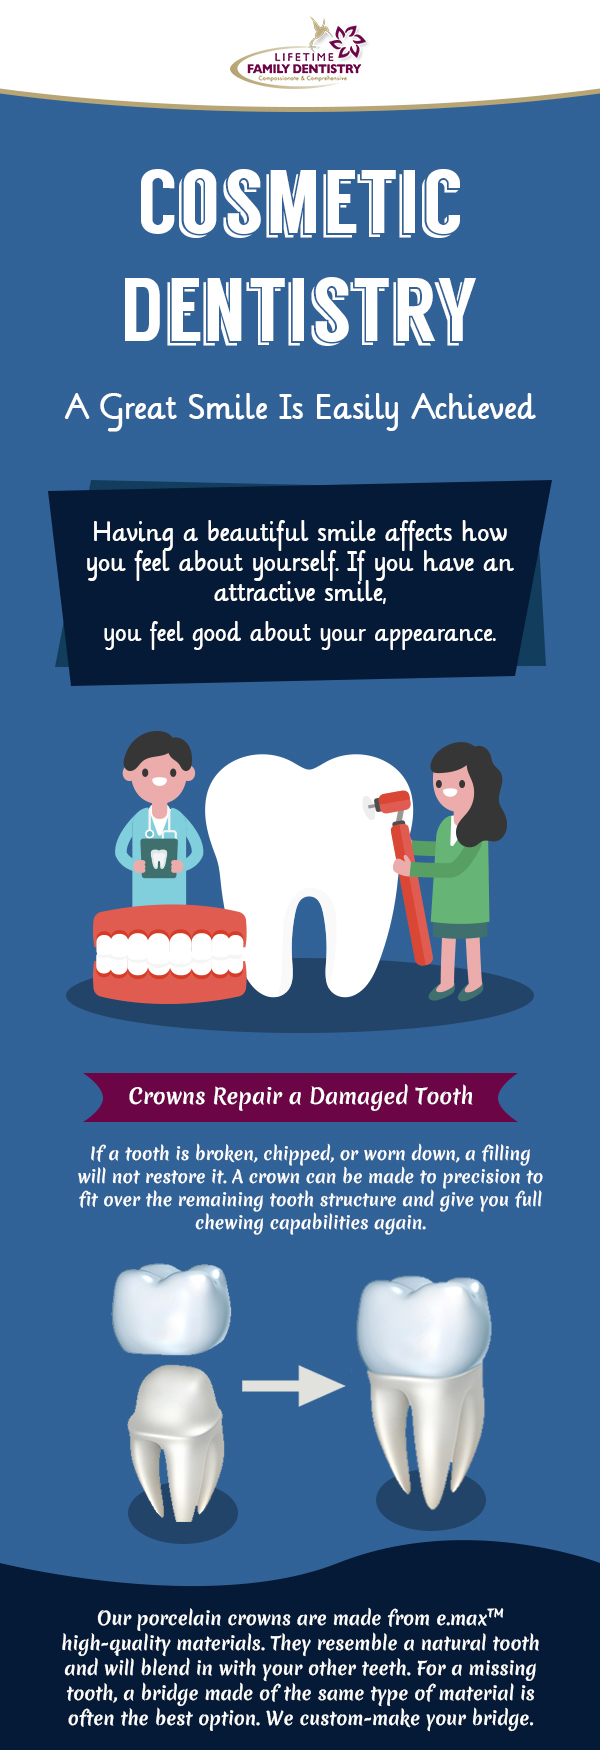 Achieve Great Smile Easily with Cosmetic Dentistry from Lifetime Family Dentistry